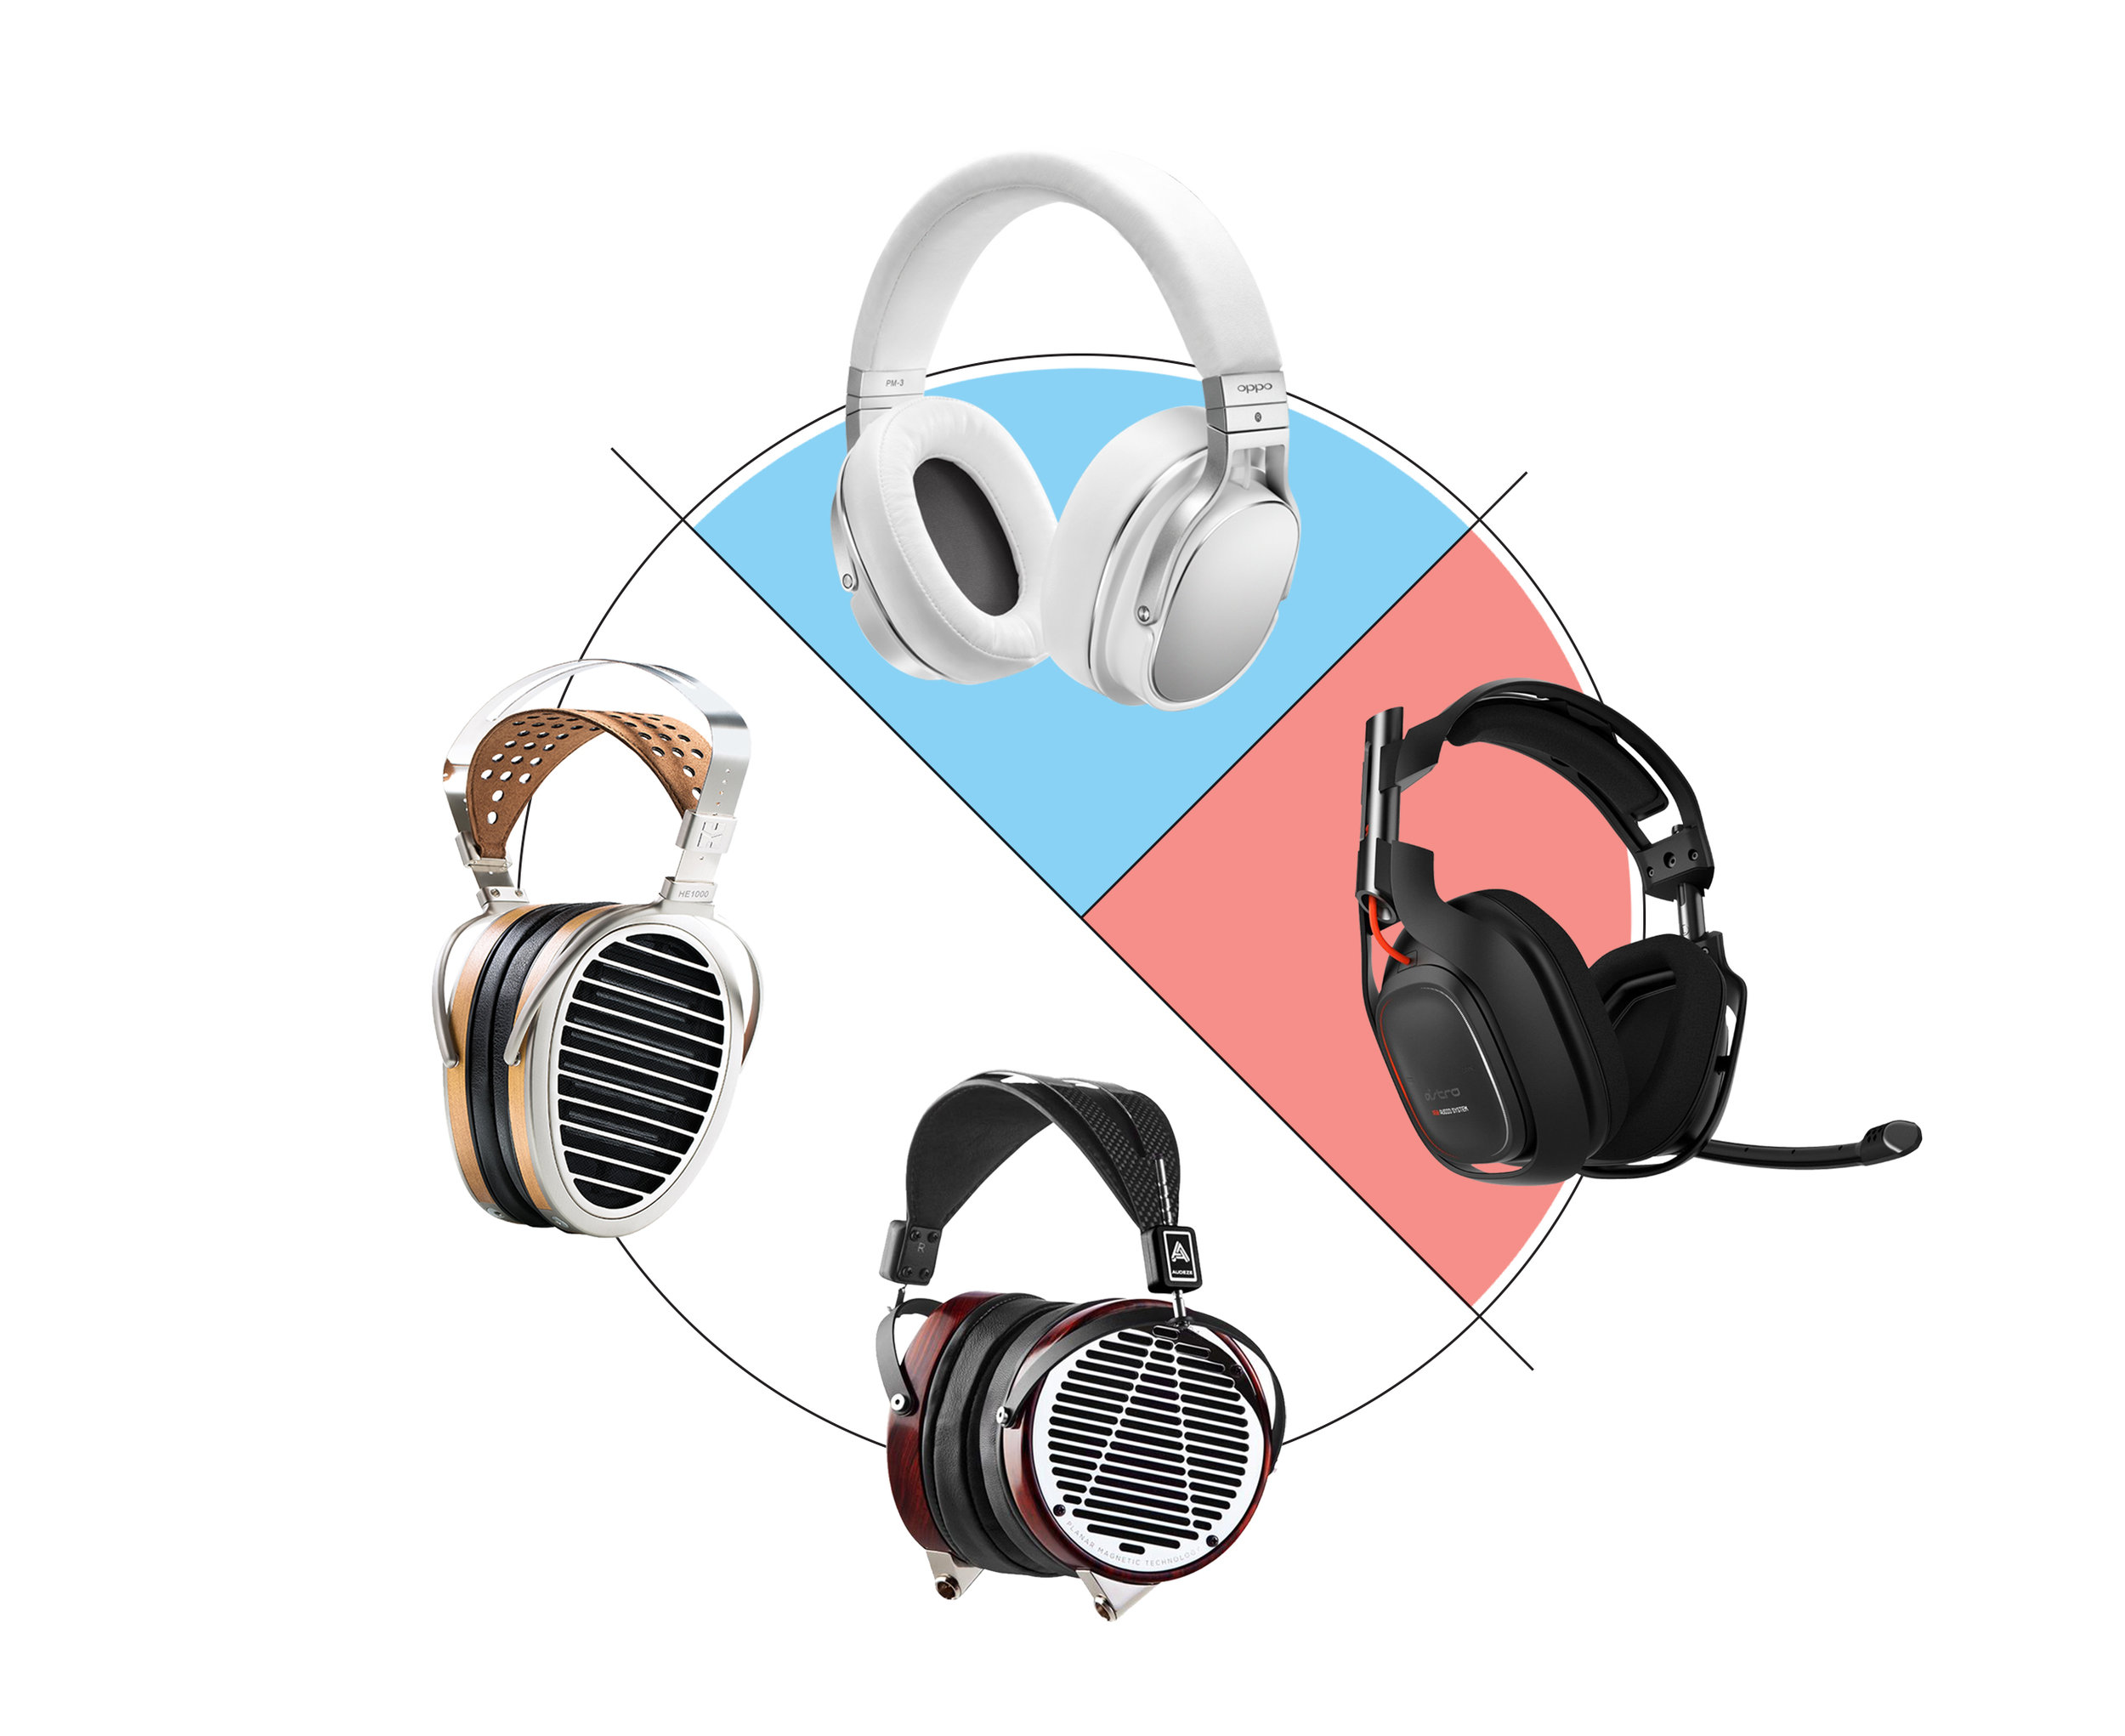 Market - The target position for the Erupt was in a zone between vintage headphones, gaming headphones and mass consumer headphones. We wanted to avoid aesthetic complexity and stay away from modern-day mass produced designs that lack character.